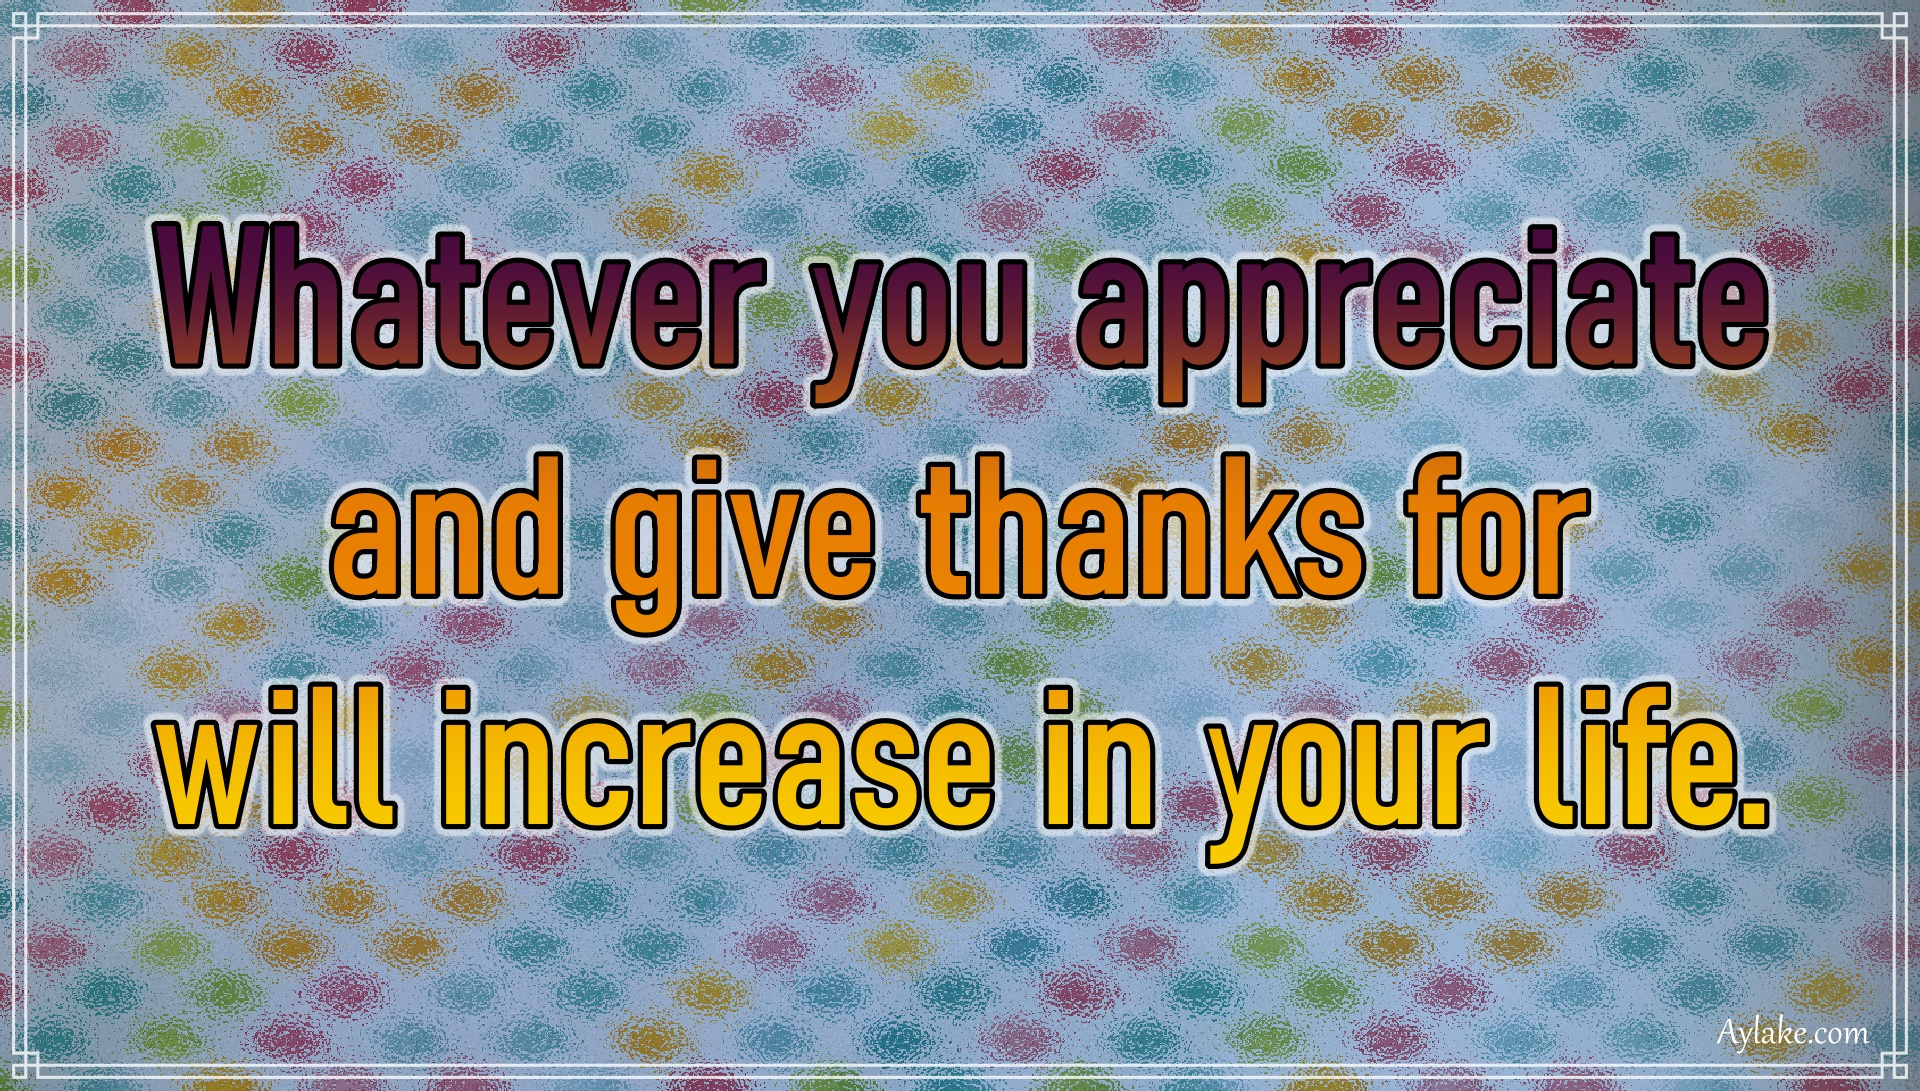 Gratitude quotes Whatever you appreciate and give thanks for will increase in your life Aylake